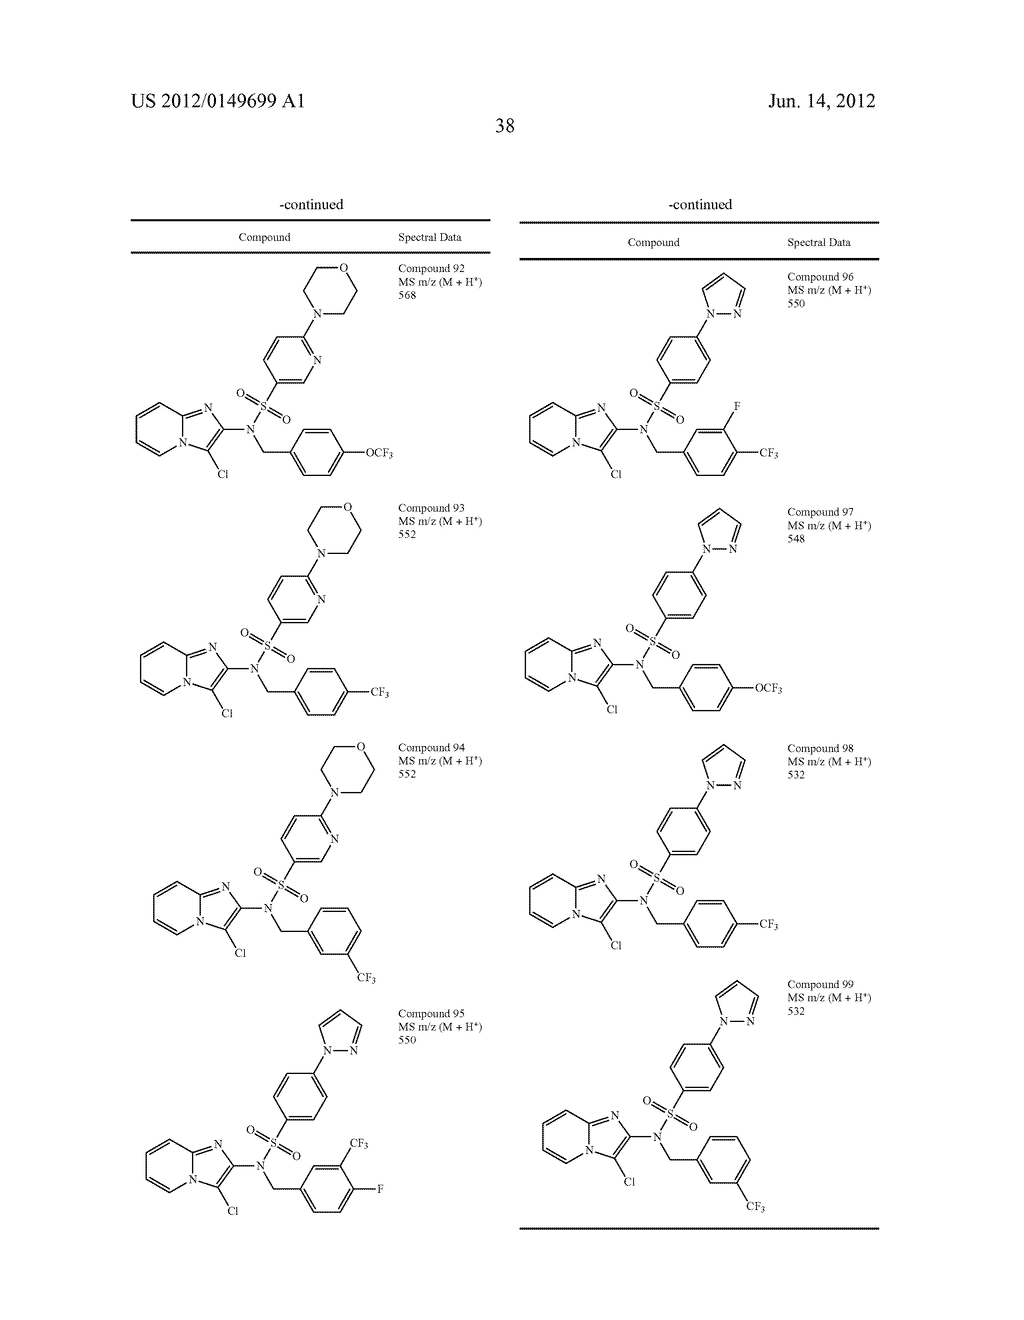 IMIDAZO[1,2-a]PYRIDINE SULFONAMIDES AS TRPM8 MODULATORS - diagram, schematic, and image 39